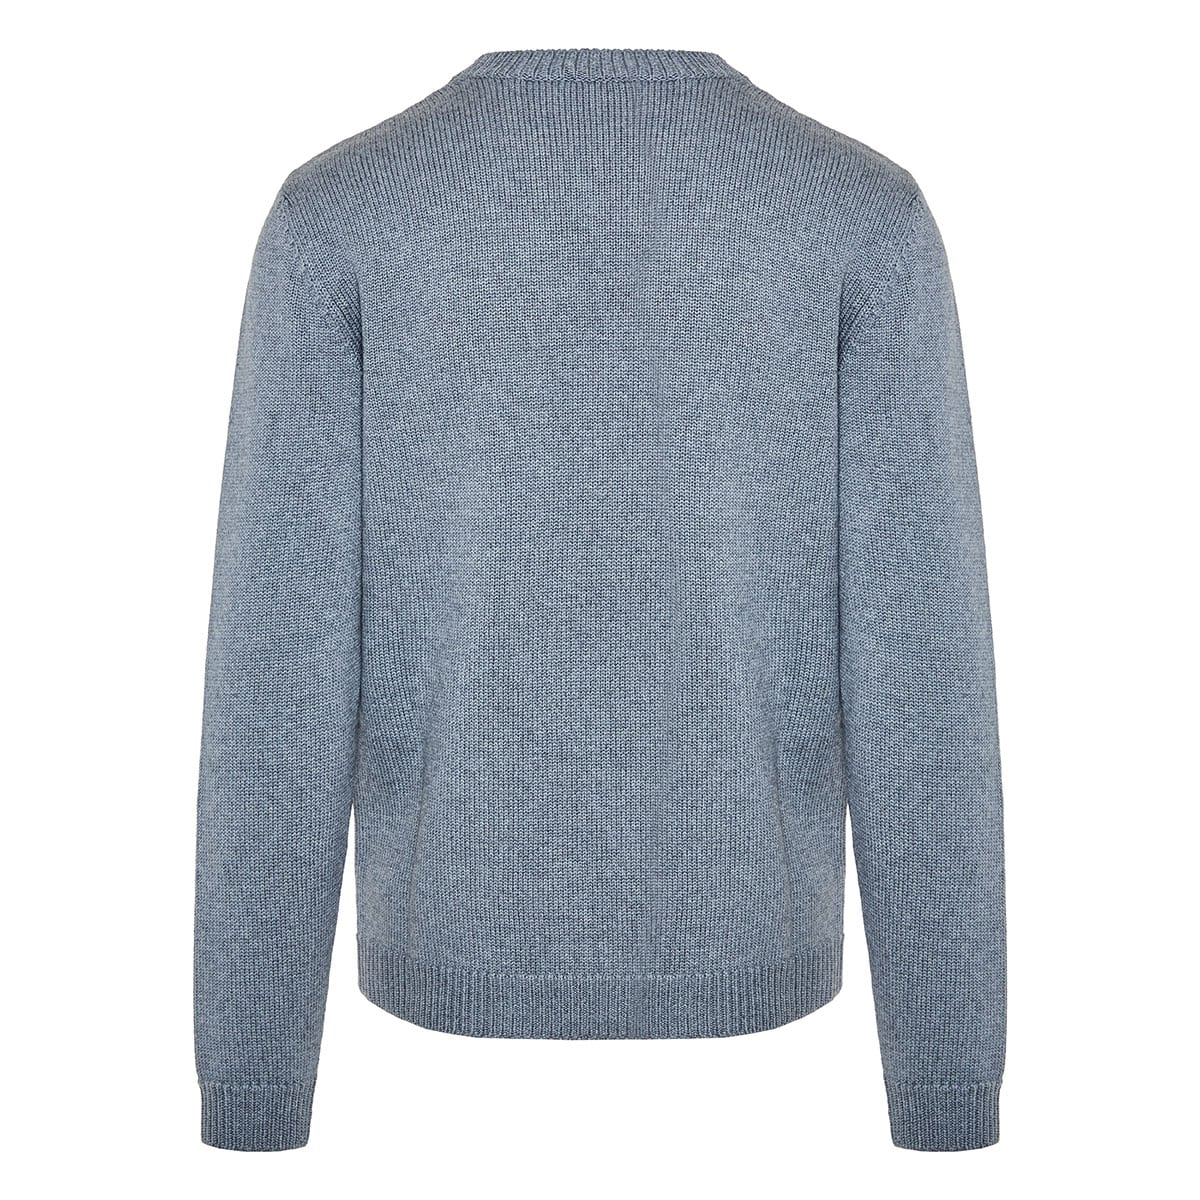 Wool sweater with pinstripe pockets